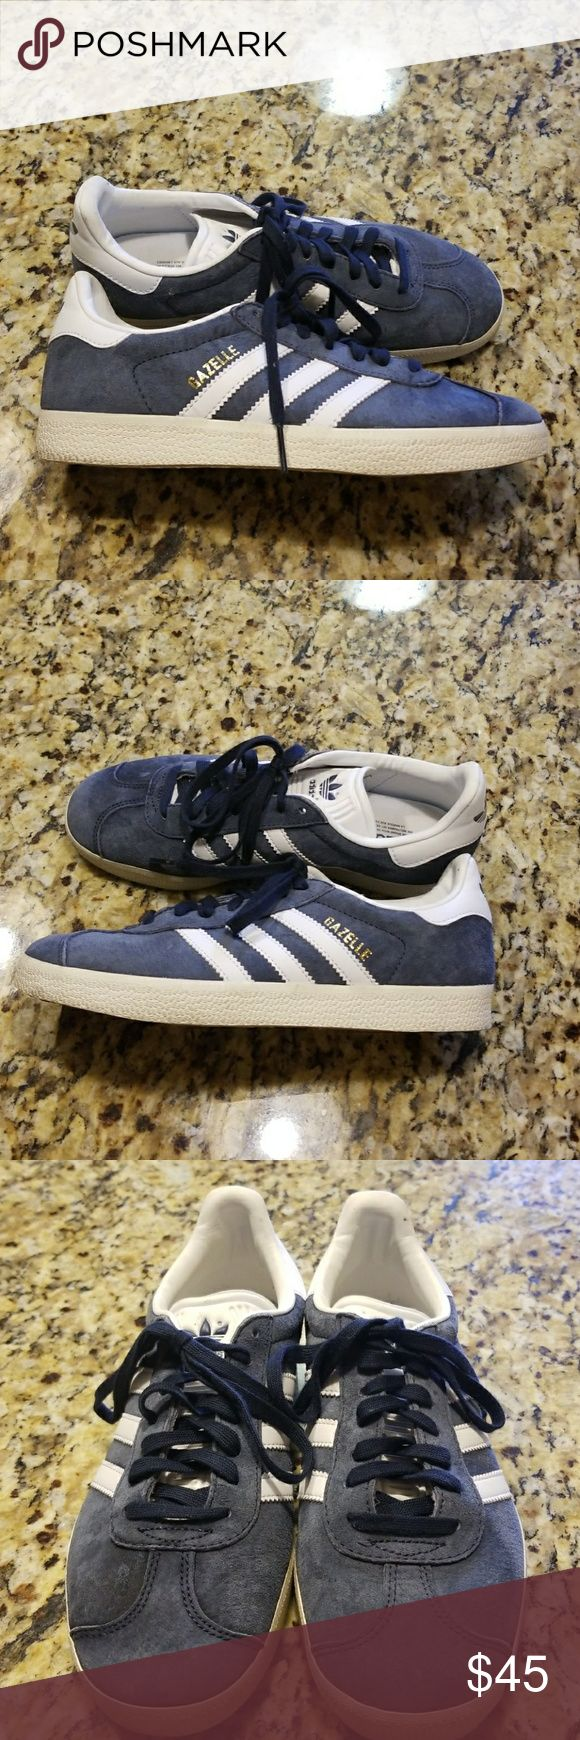 adidas gazelle blue style photoshop black adidas shoes superstar in person